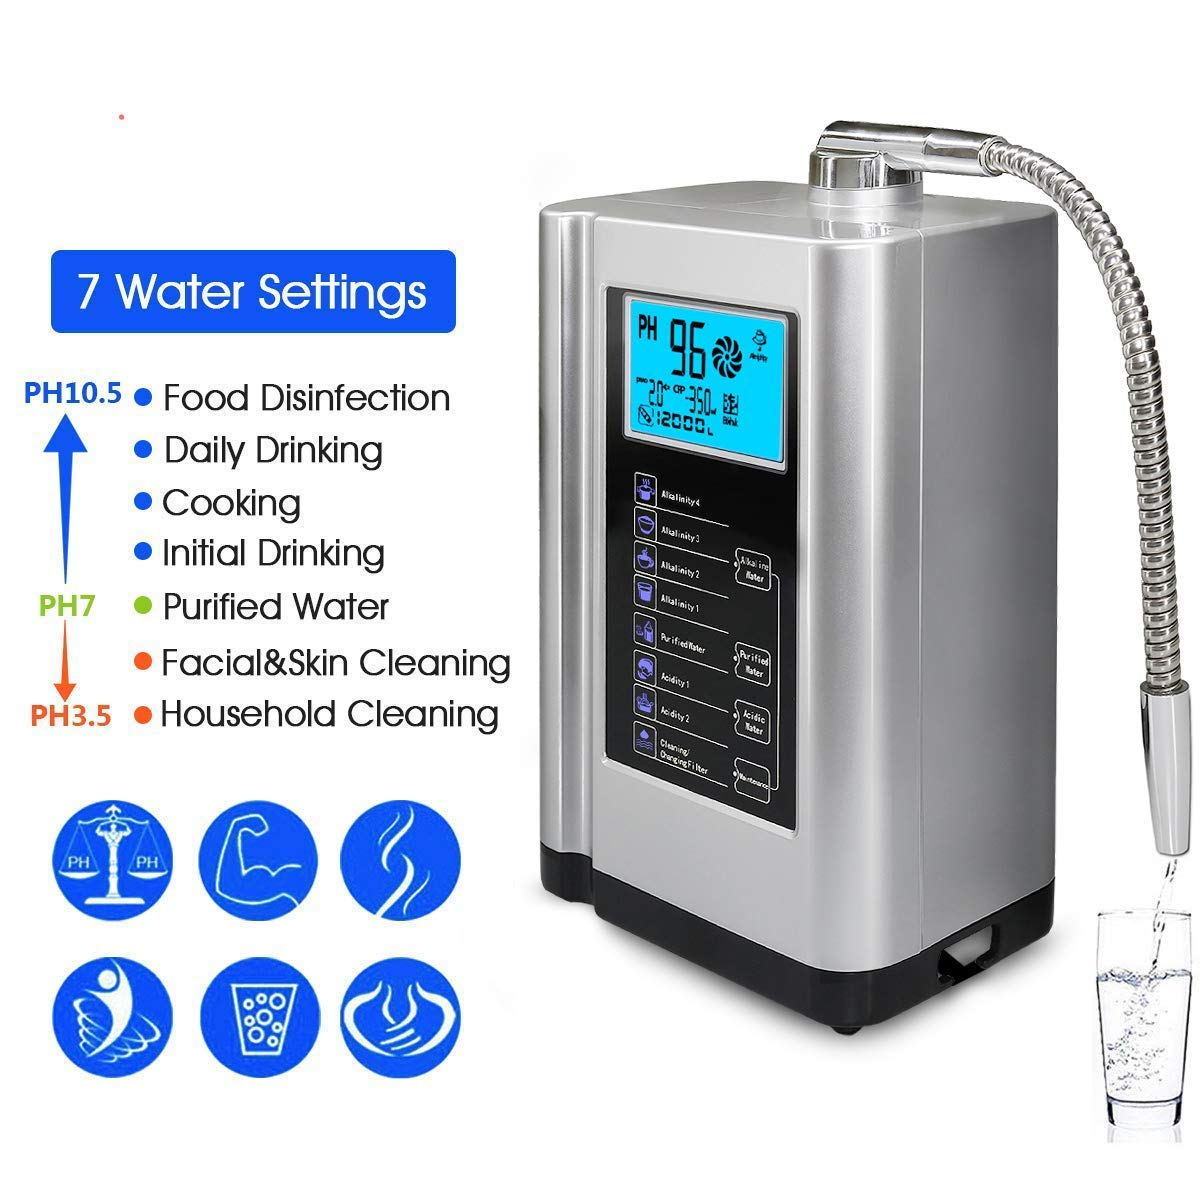 7 Best Water Ionizers (Feb. 2020) - Reviews & Buying Guide